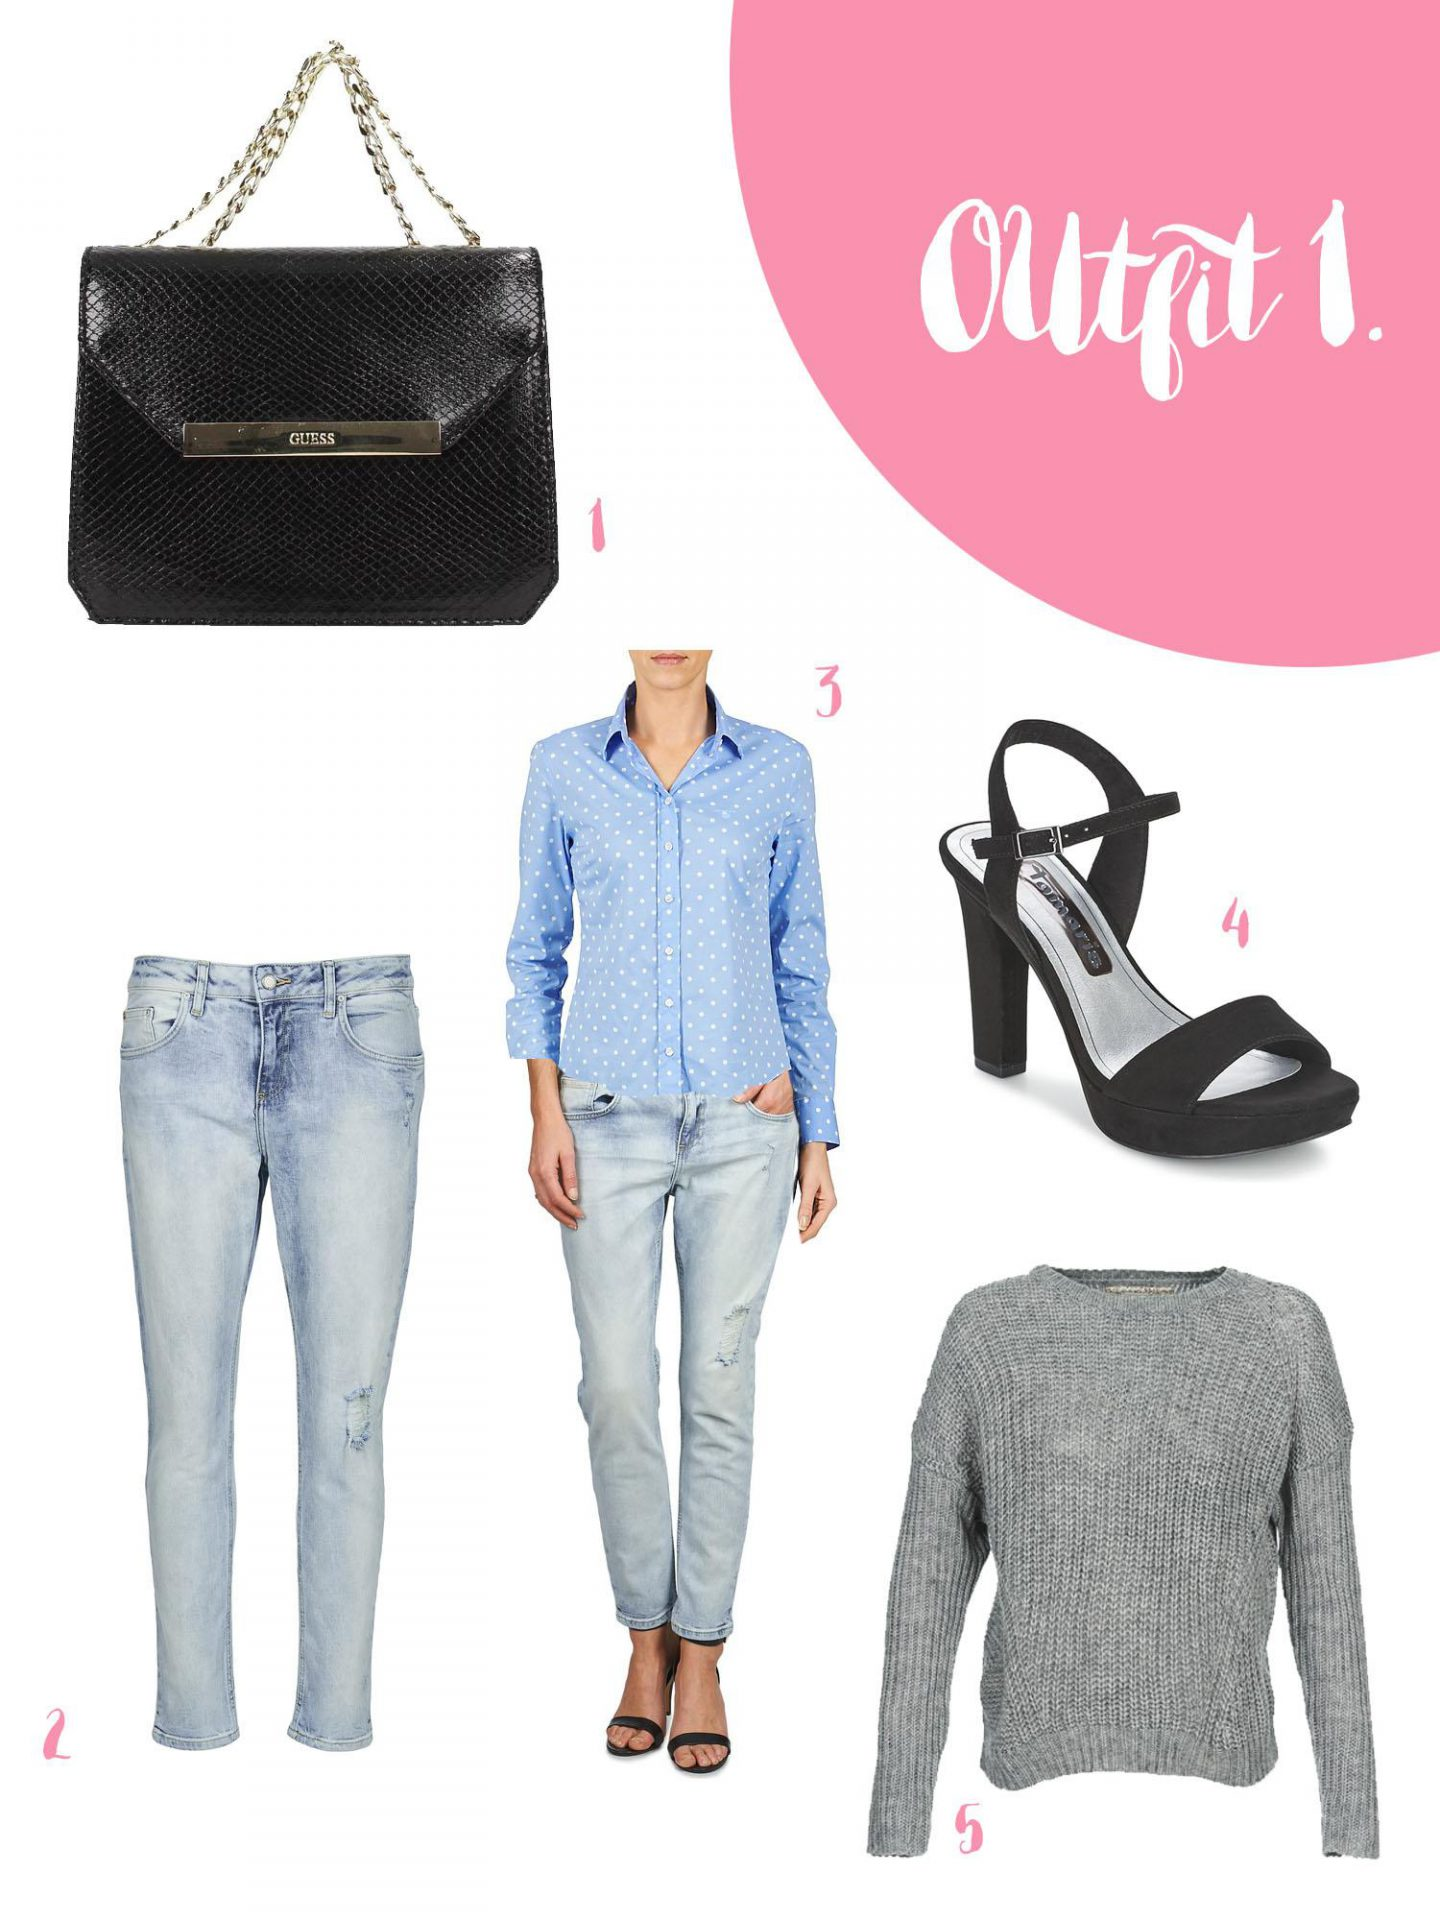 Outfit 1 - outfit inspiratie sale spartoo